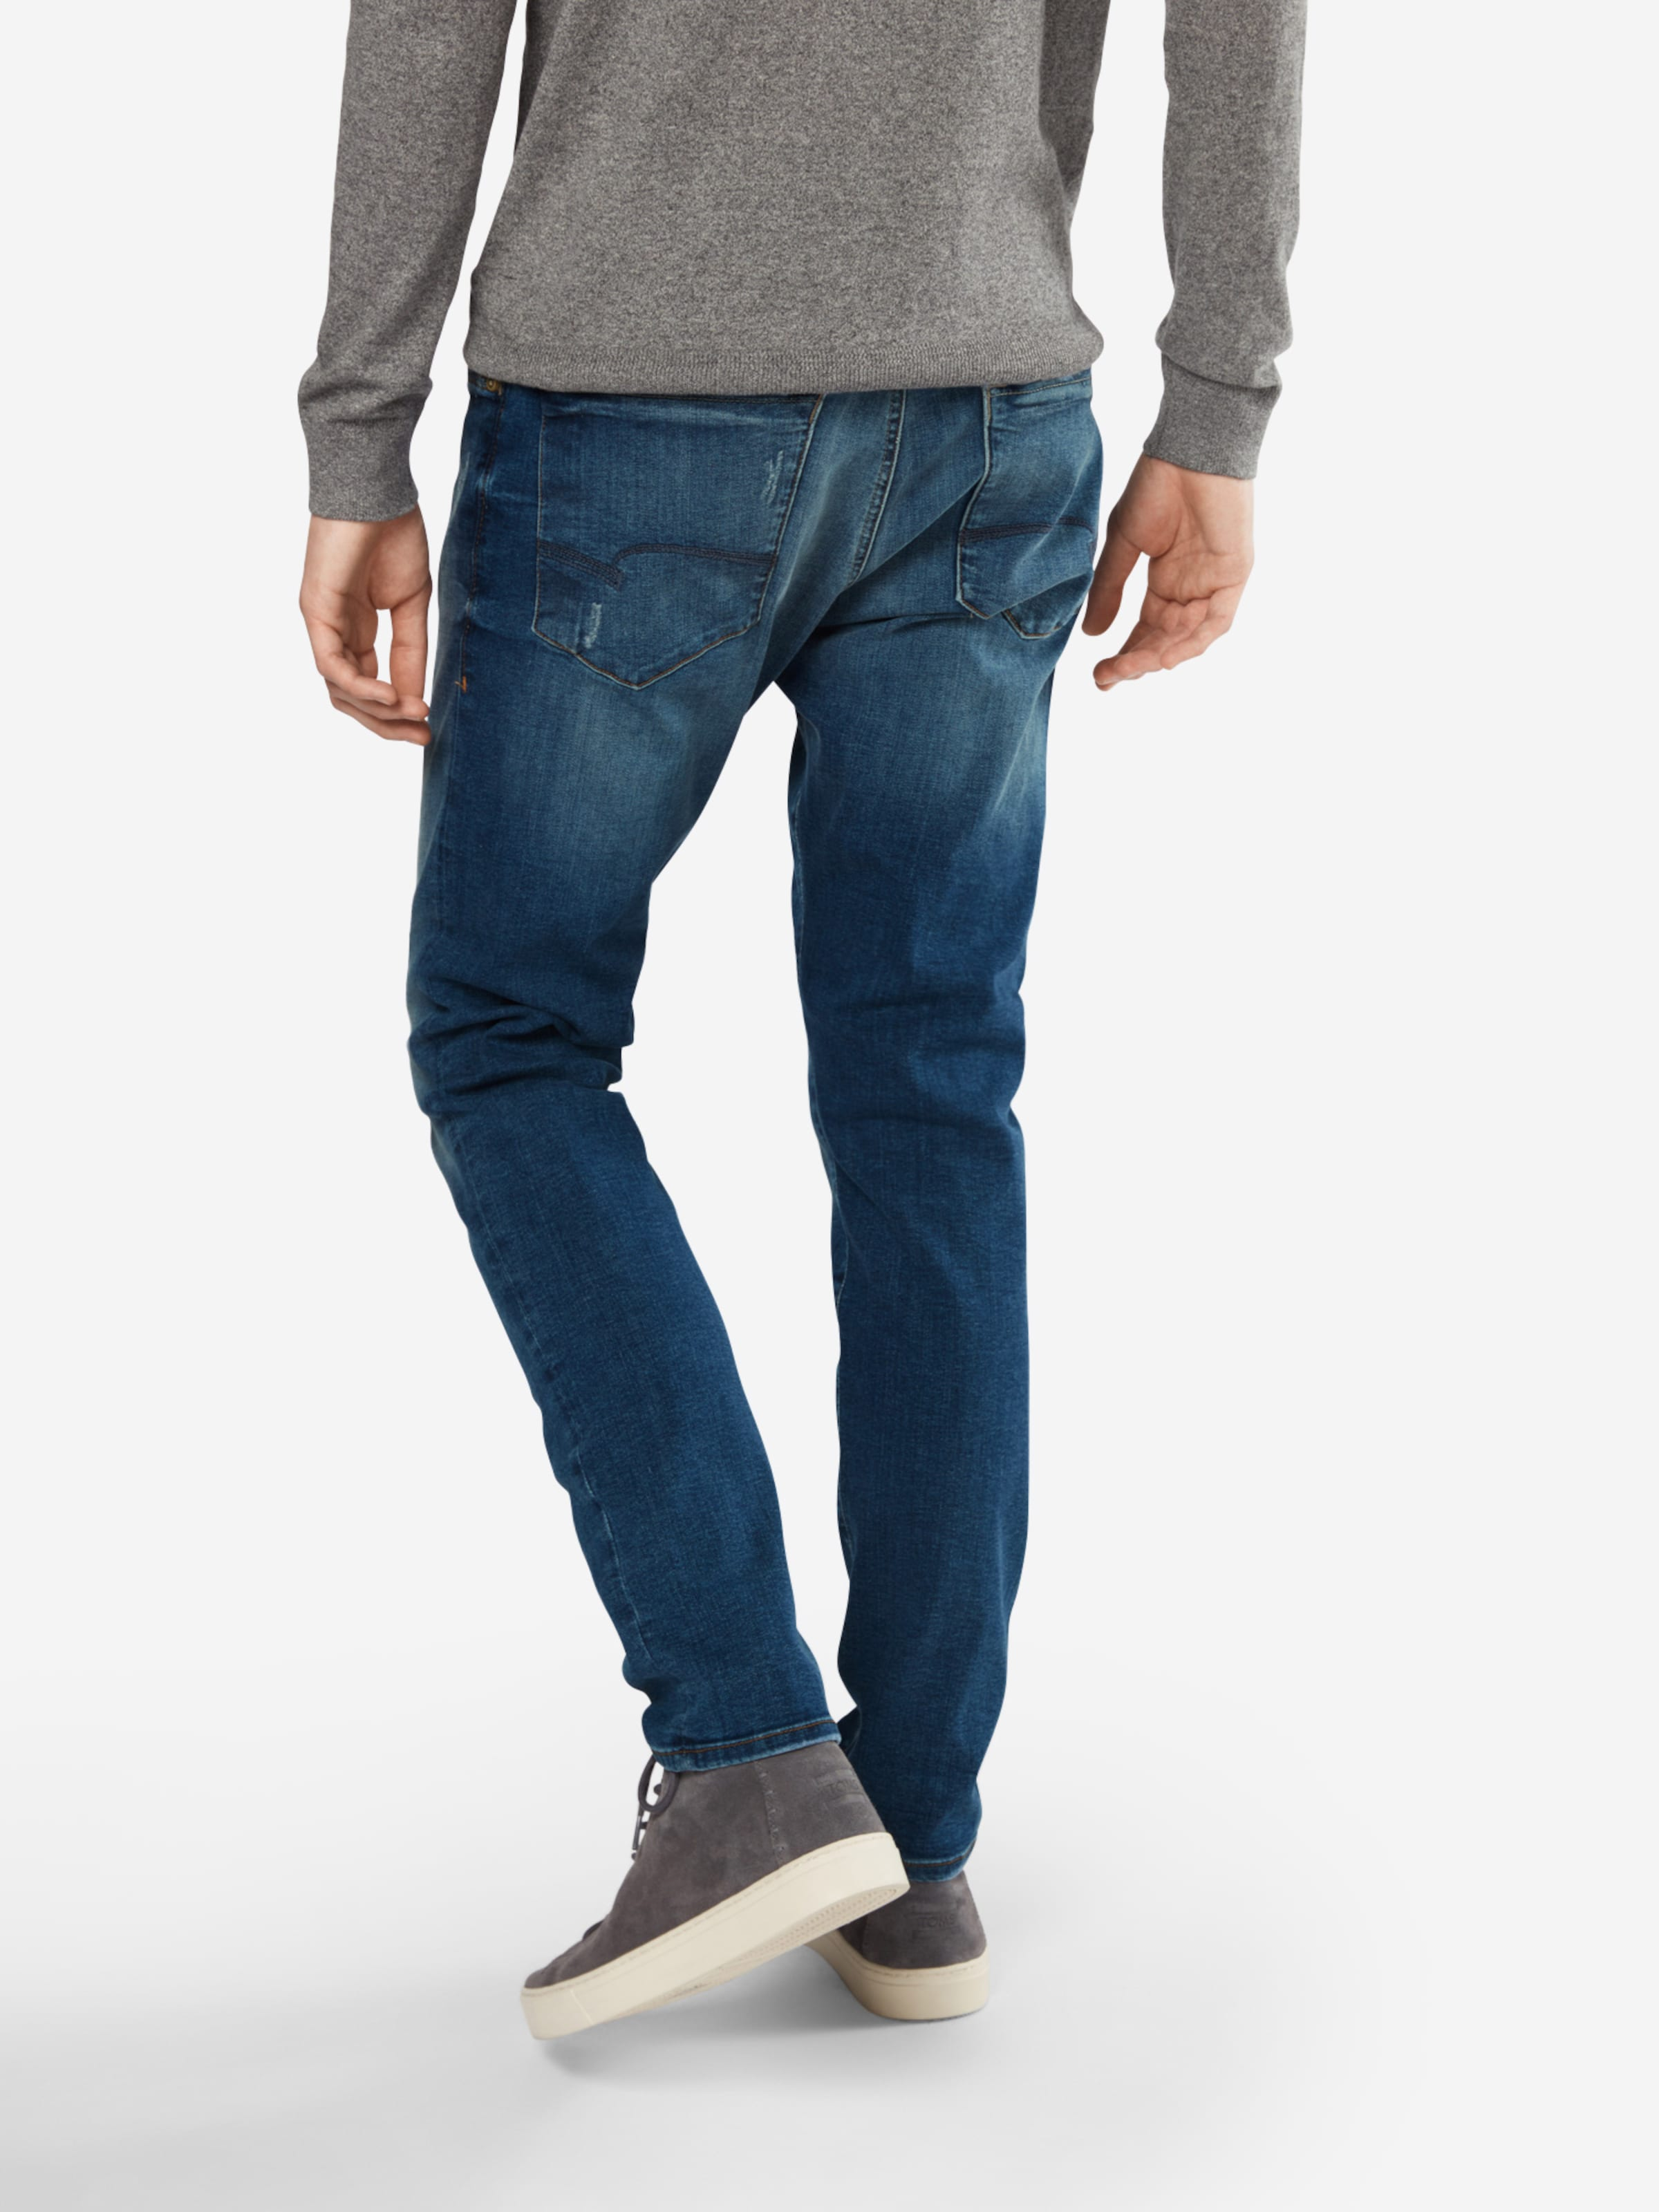 Denim Mavi En Bleu Jean 'james' 8nOXNZ0wPk